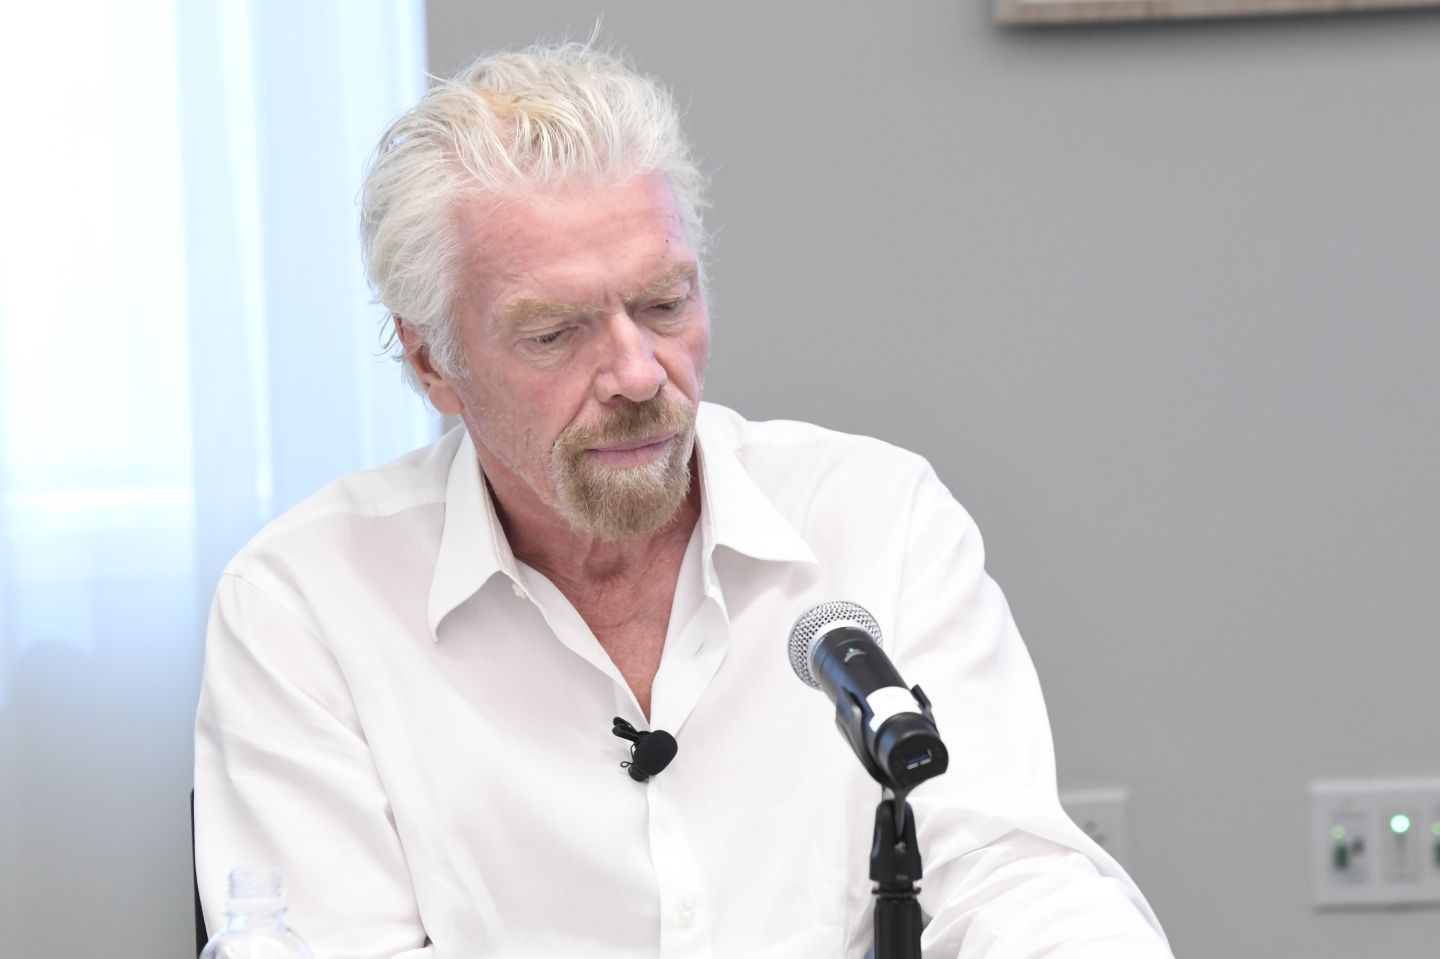 Richard Branson wearing a white shirt at a panel discussion